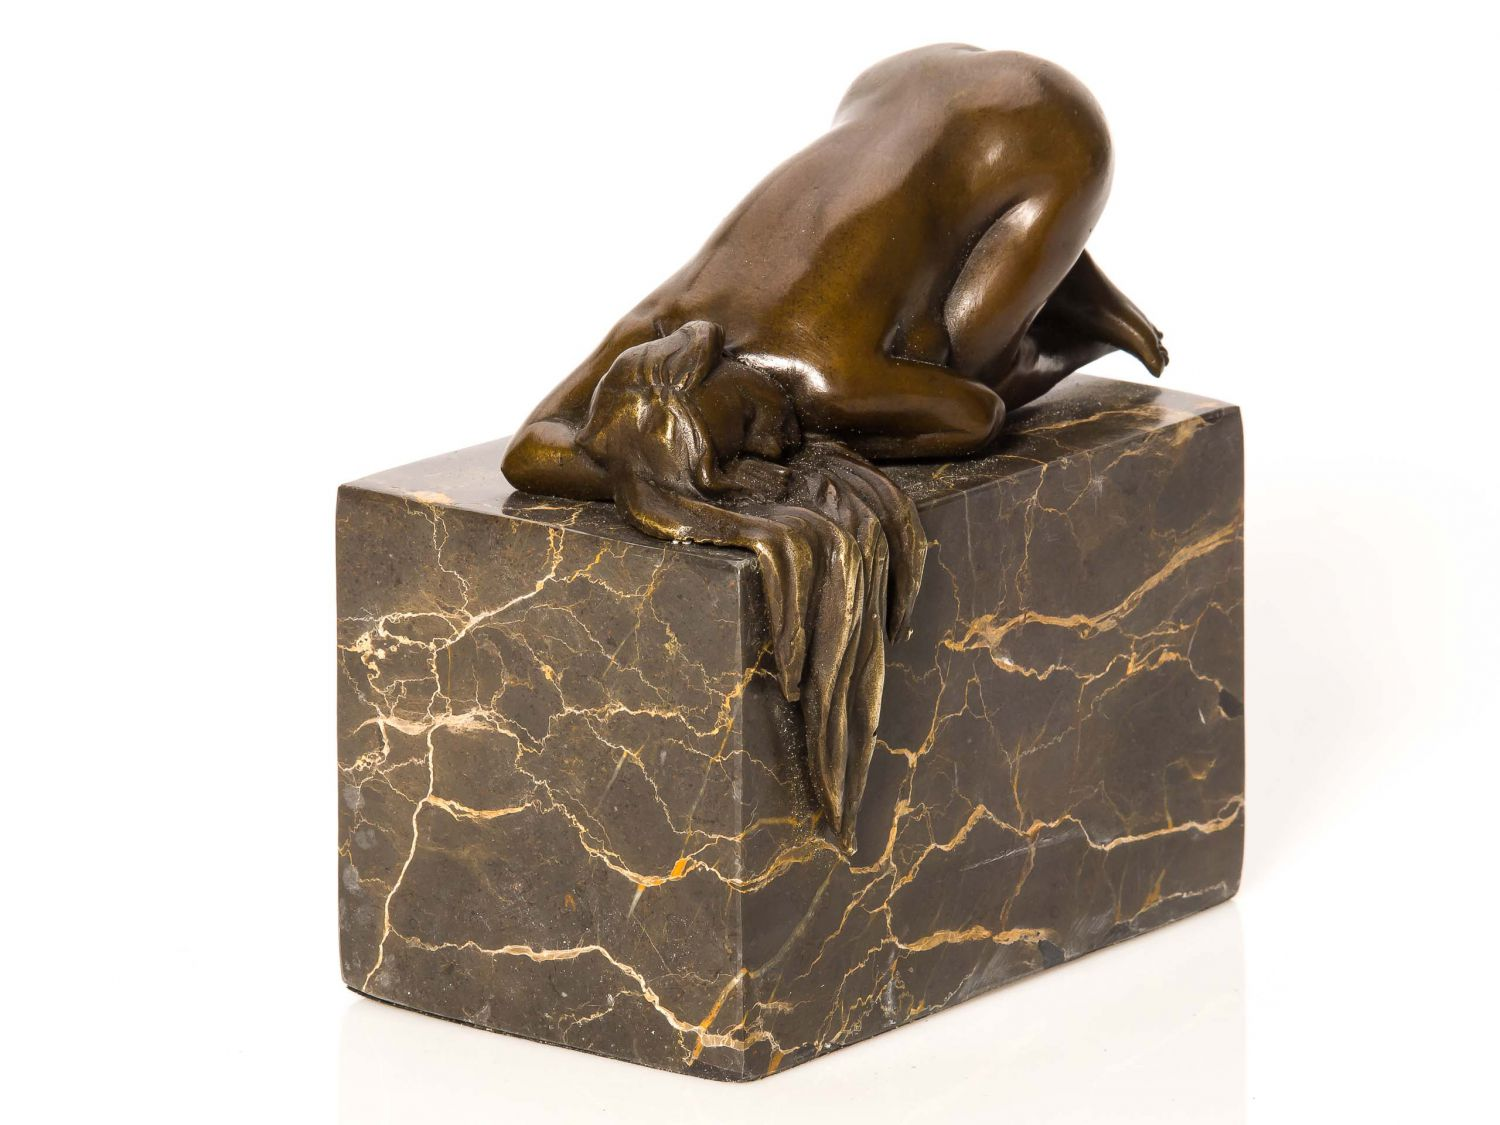 Erotic bronze sculptures